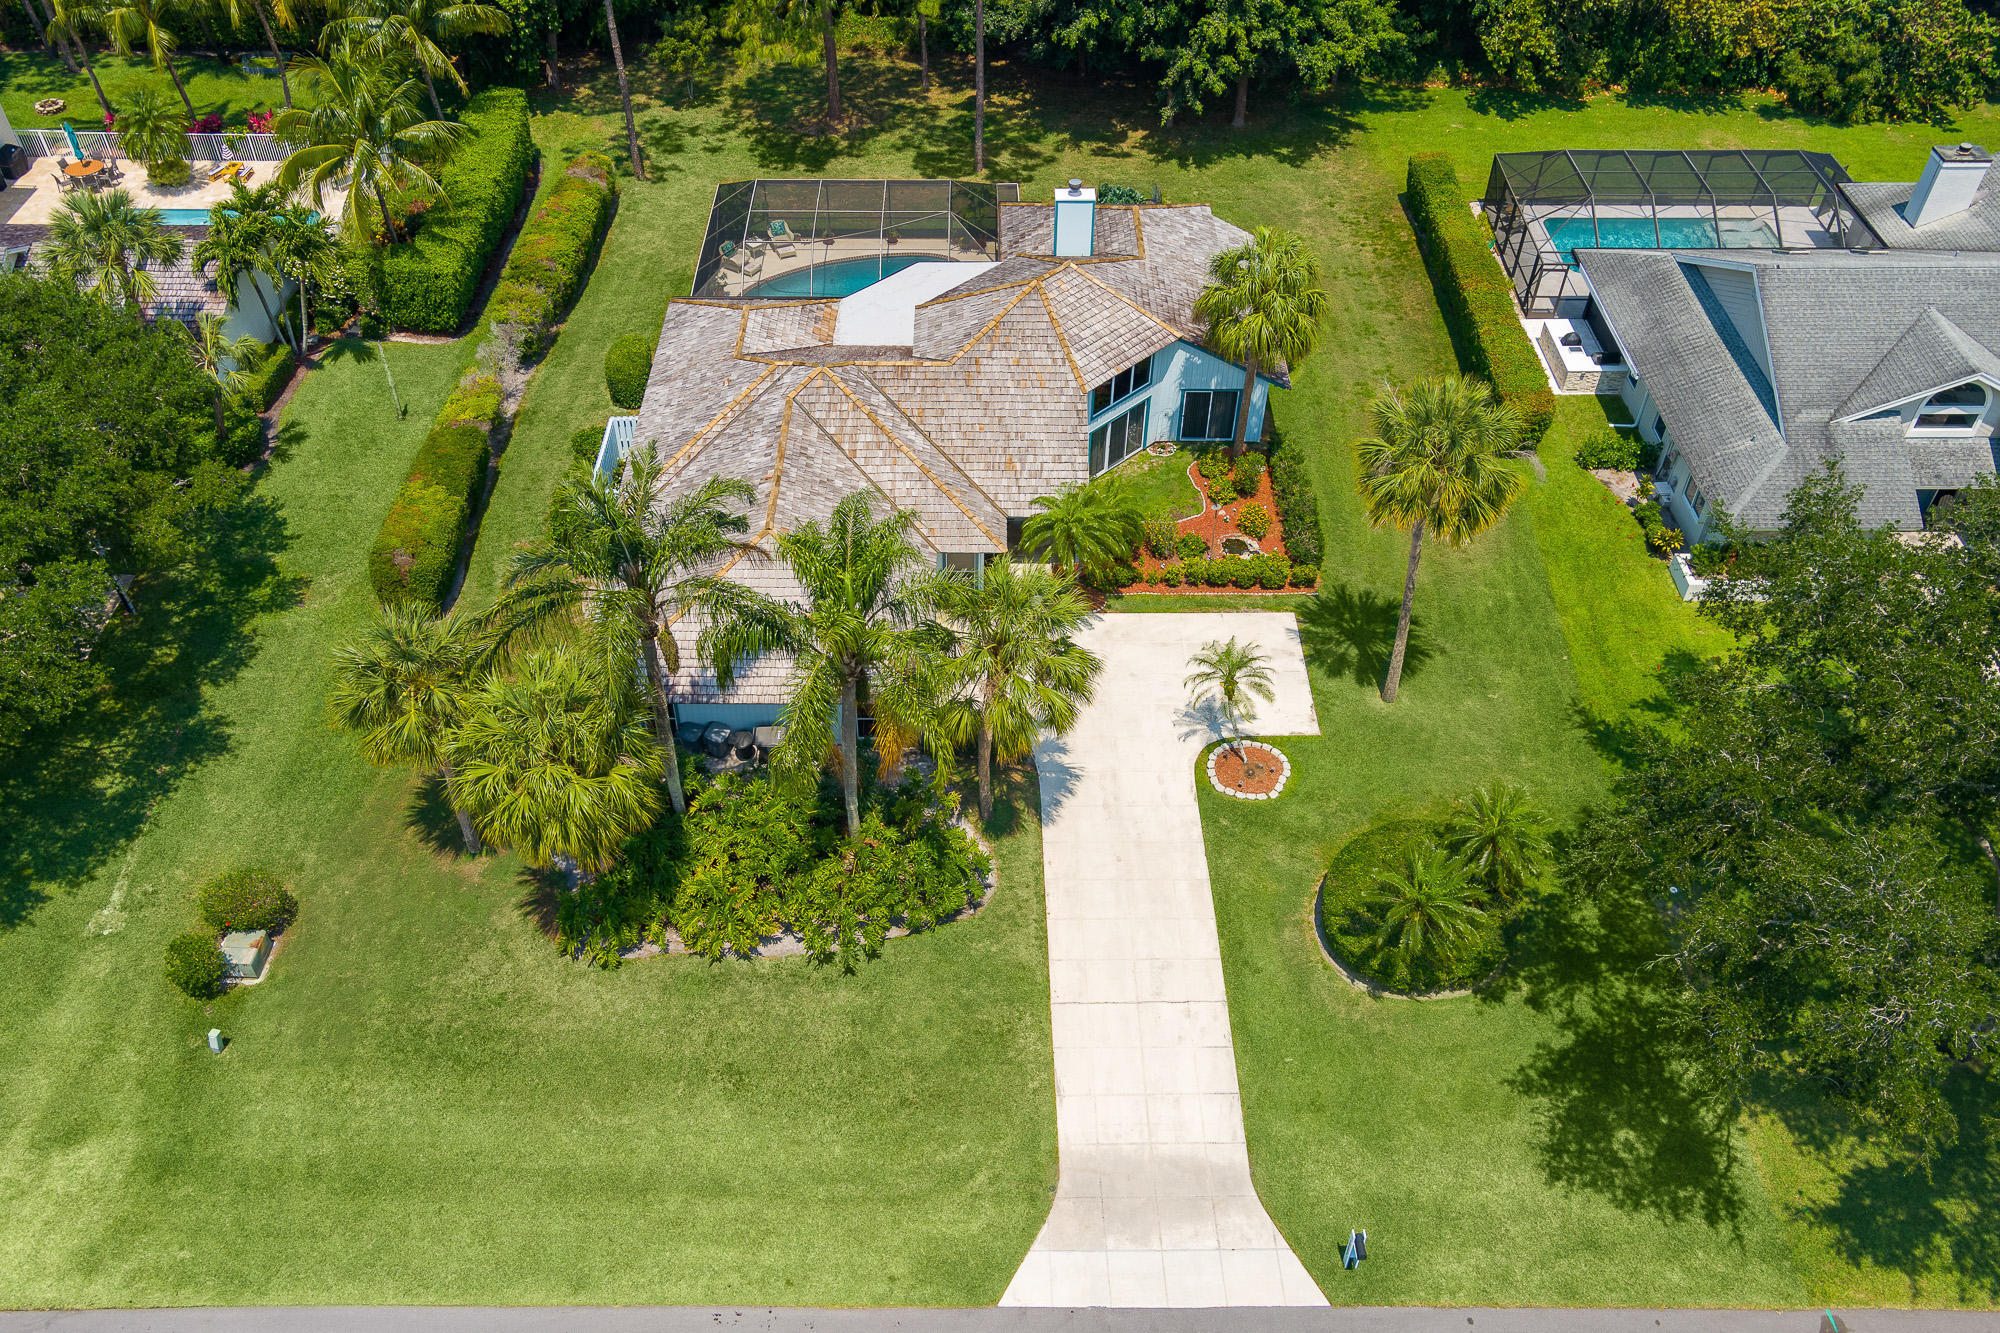 This 4/2/2 spacious single family pool home is located inside the highly coveted community of Whispering Trails in Jupiter. Once inside, the entry-level living area, high ceilings, and spacious floor plan immediately put the details of this home into perspective. Interior features include formal living & dining areas, wood burning fireplace, and a private den. It is situated on an oversized 1/2-acre lot with a private screened pool/patio. The serene community of Whispering Trails is perfectly located with quick access to the Florida Turnpike and I-95, and less than 6 miles from the gorgeous Atlantic Ocean and Jupiter beaches. Abundant choices for shopping, dining, sports, and entertainment are just minutes away. Cont'd . . . For the golf enthusiasts, there are several nearby daily or annual fee courses that provide challenging rounds. A commute to the Palm Beach International Airport is just a short drive, as are many family entertainment attractions. This home is not one to be missed. Come see what it is like to live in luxury without the high costs of mandatory memberships and high association fees.